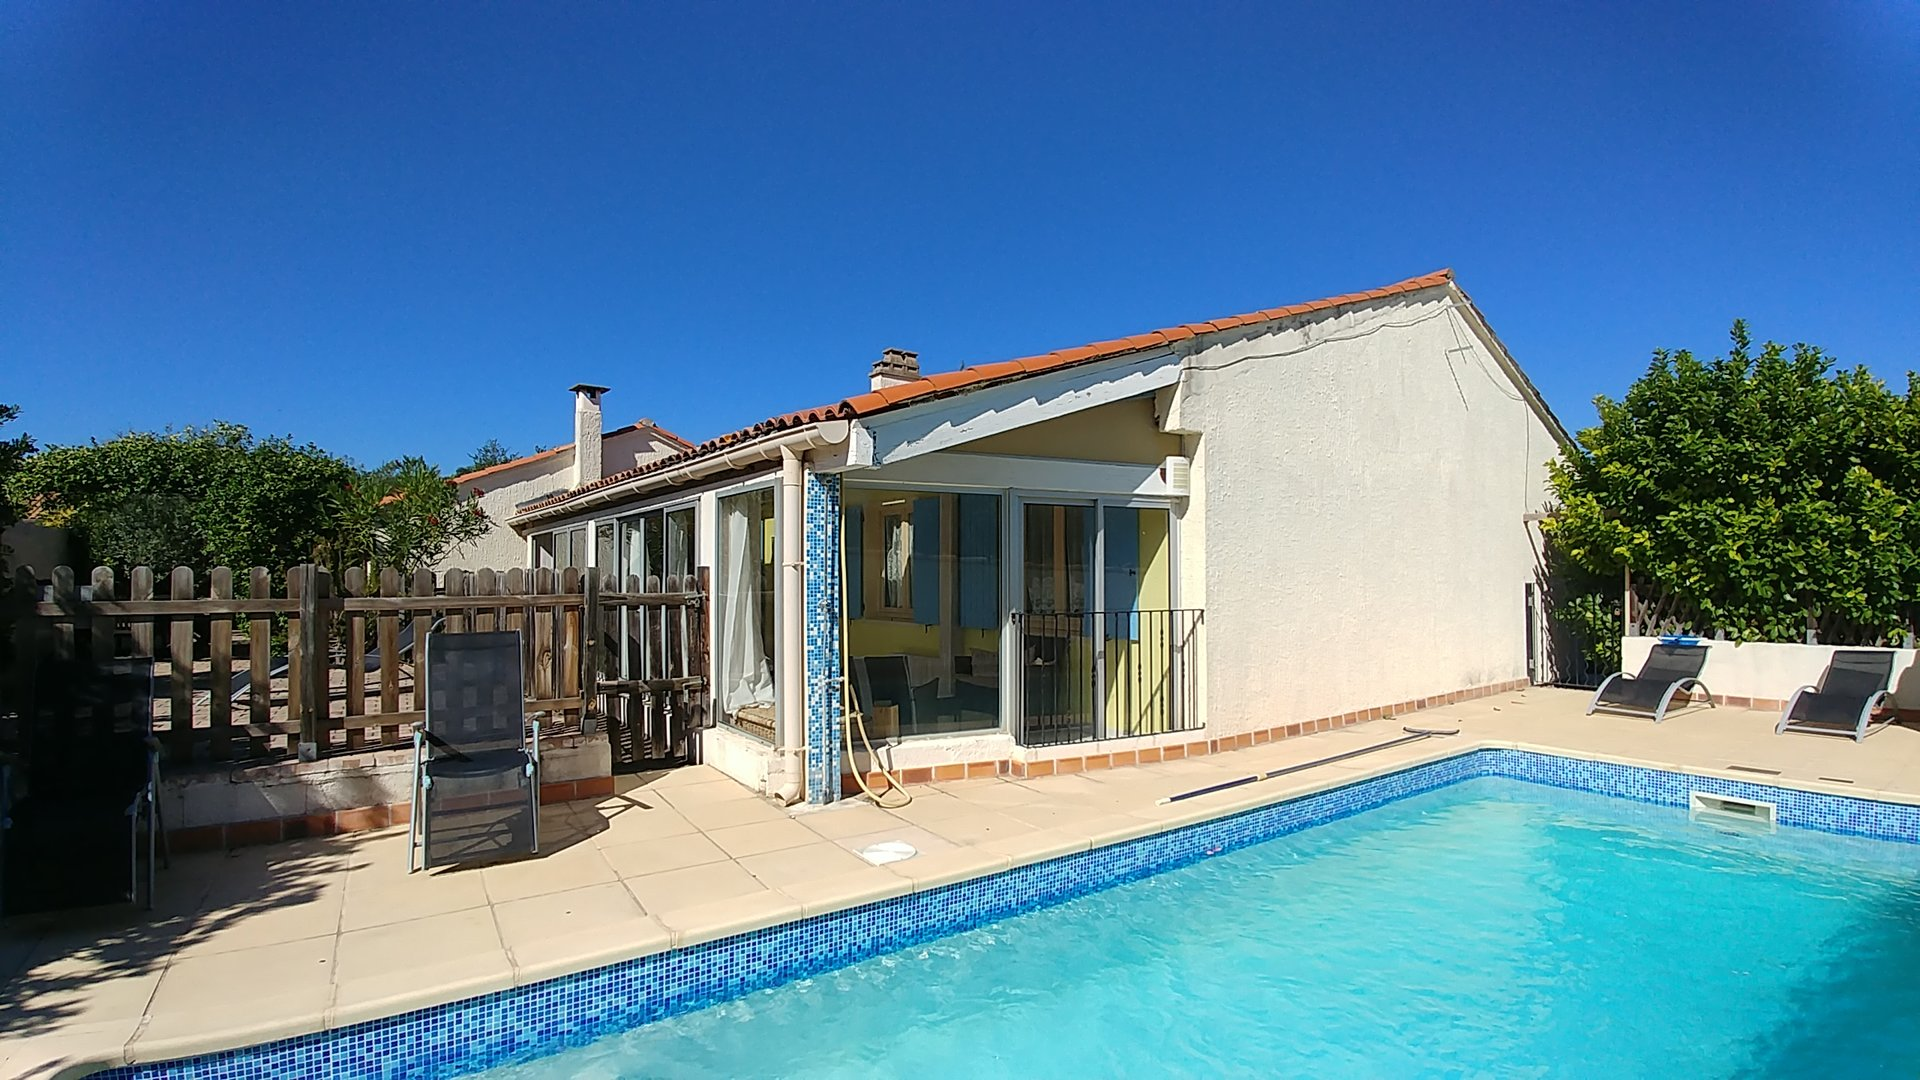 5 bedroom villa with private pool and garden, 2 mins walk to restaurants